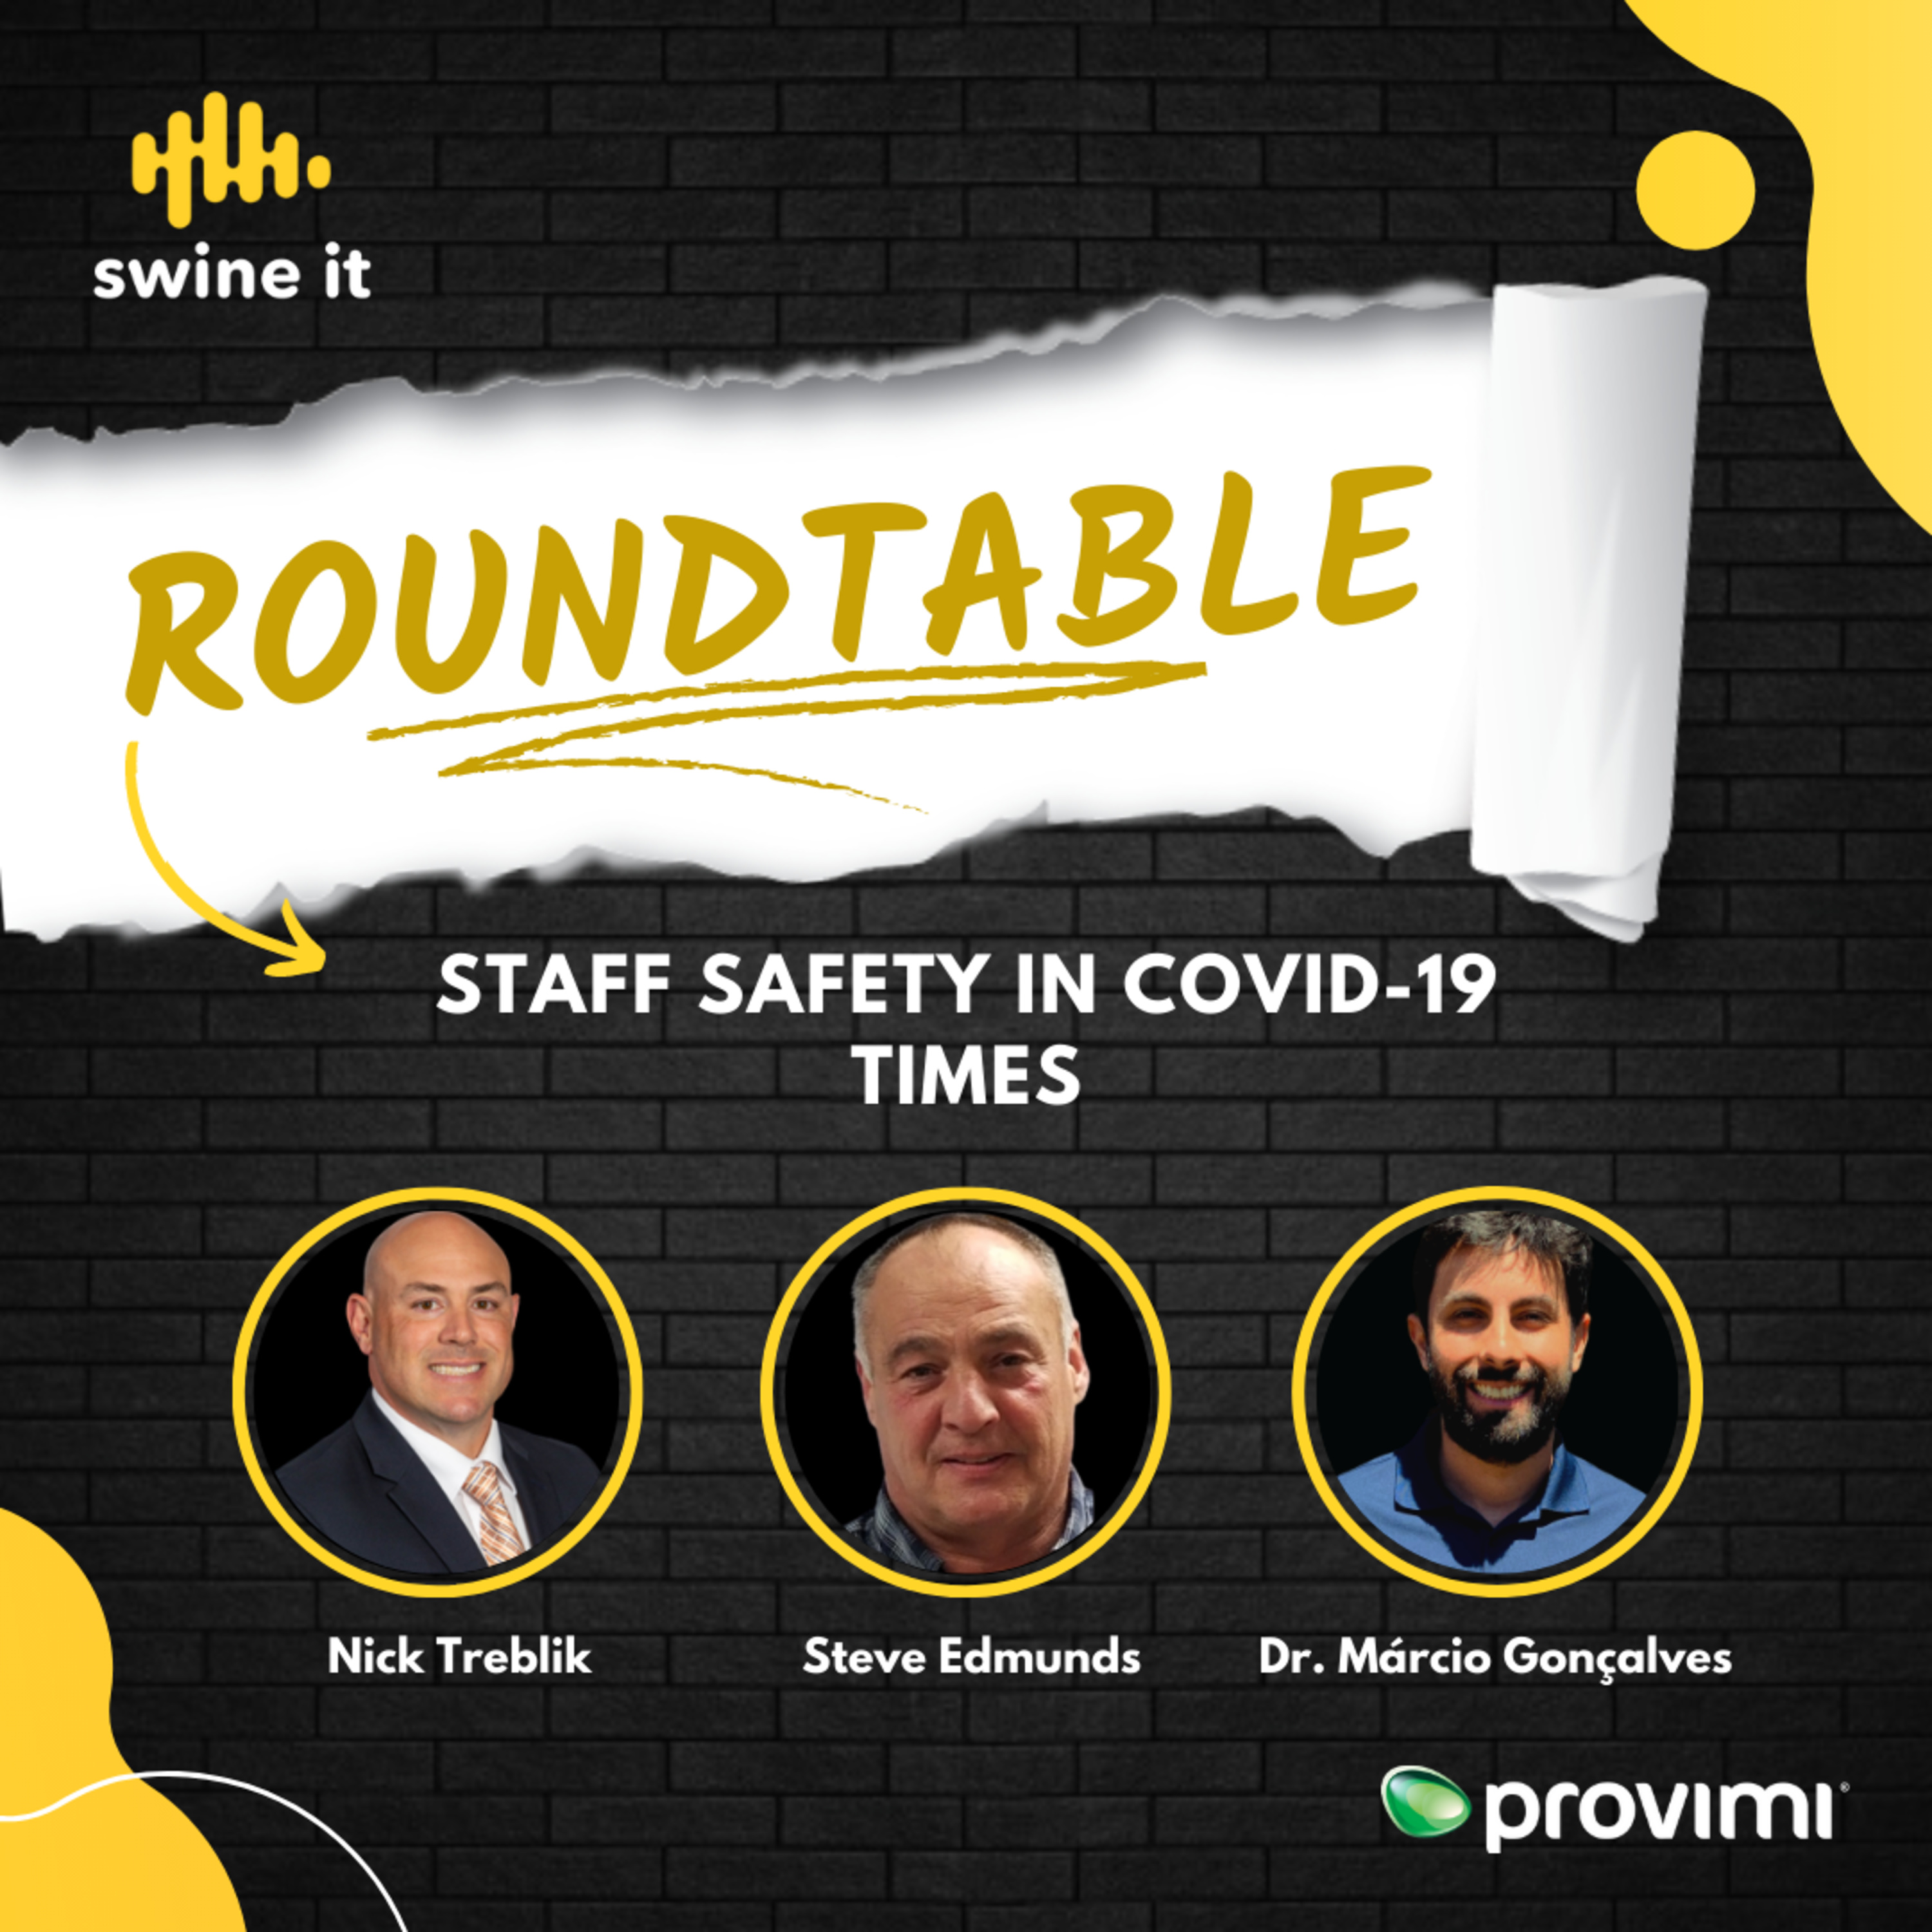 Roundtable: Staff safety in COVID-19 times - Nick Treblik and Steve Edmunds